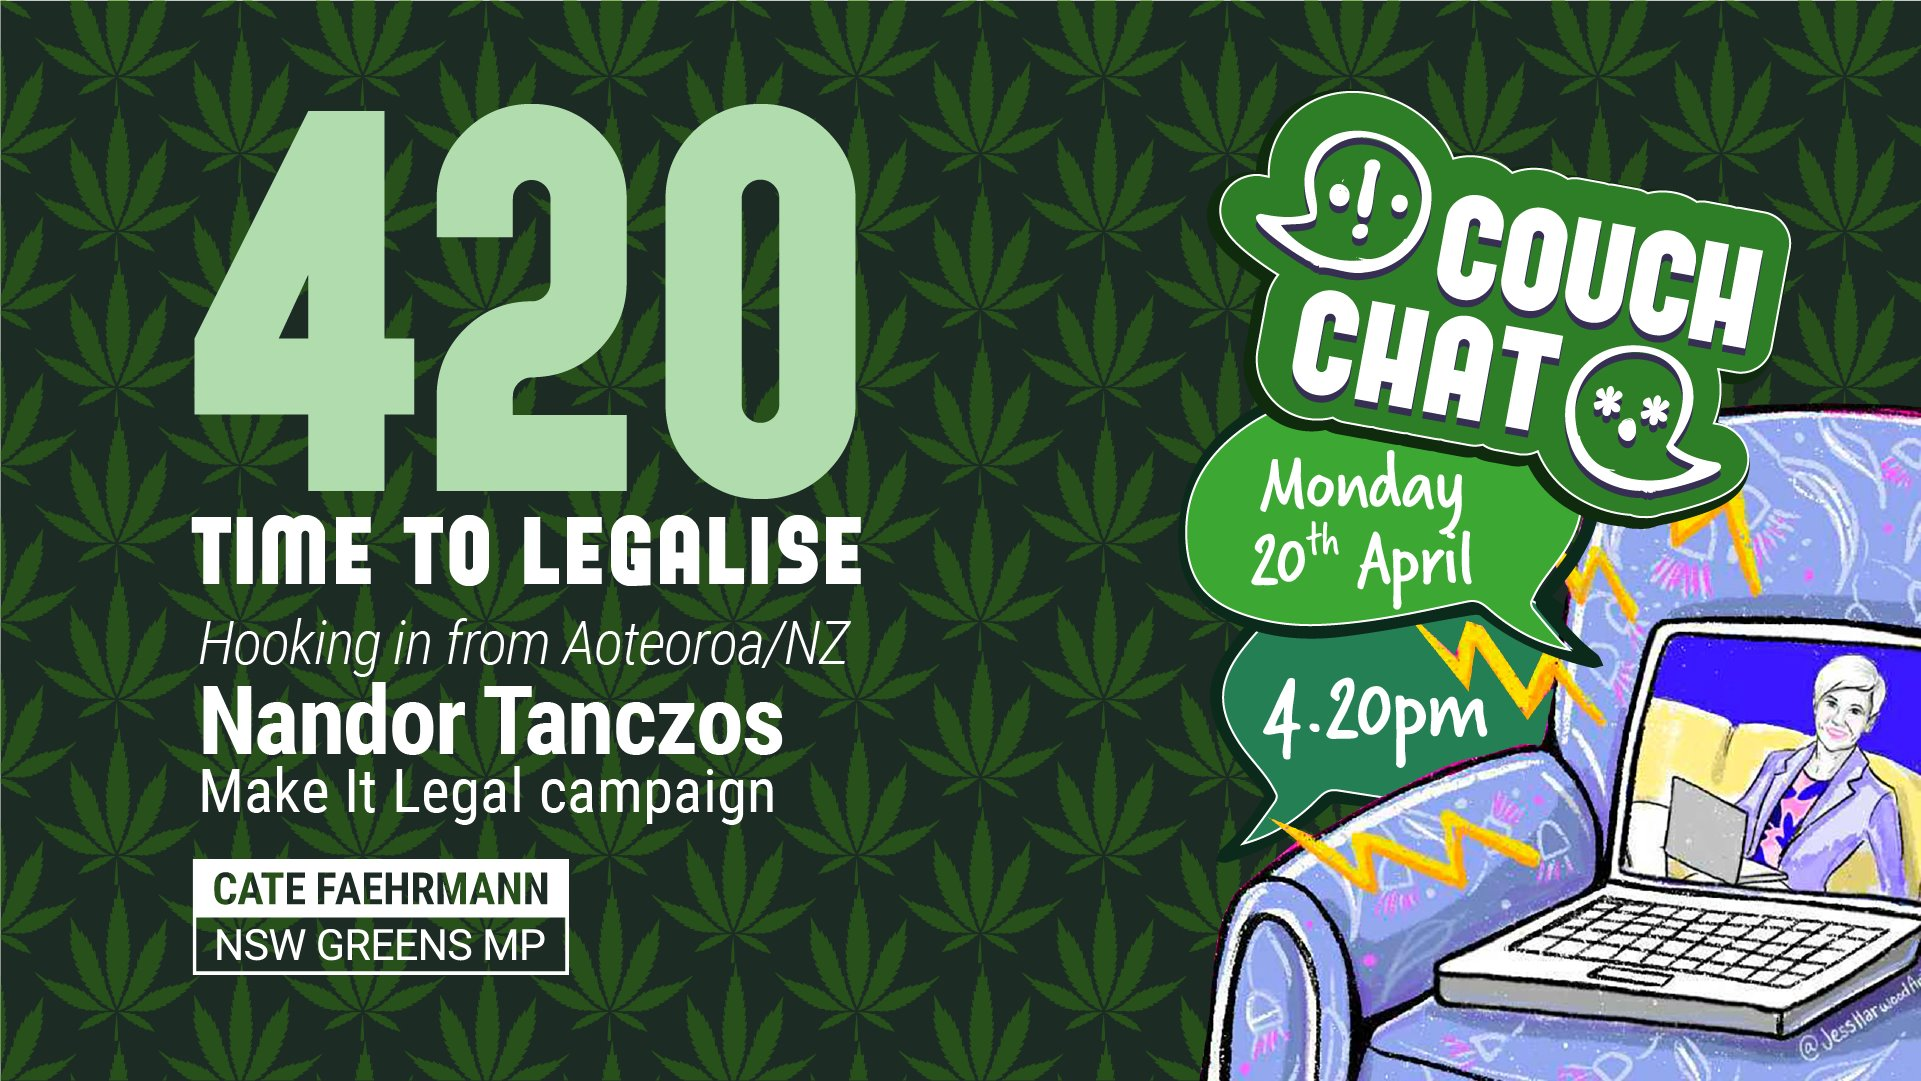 Legalise Cannabis with Nandor Tanczos